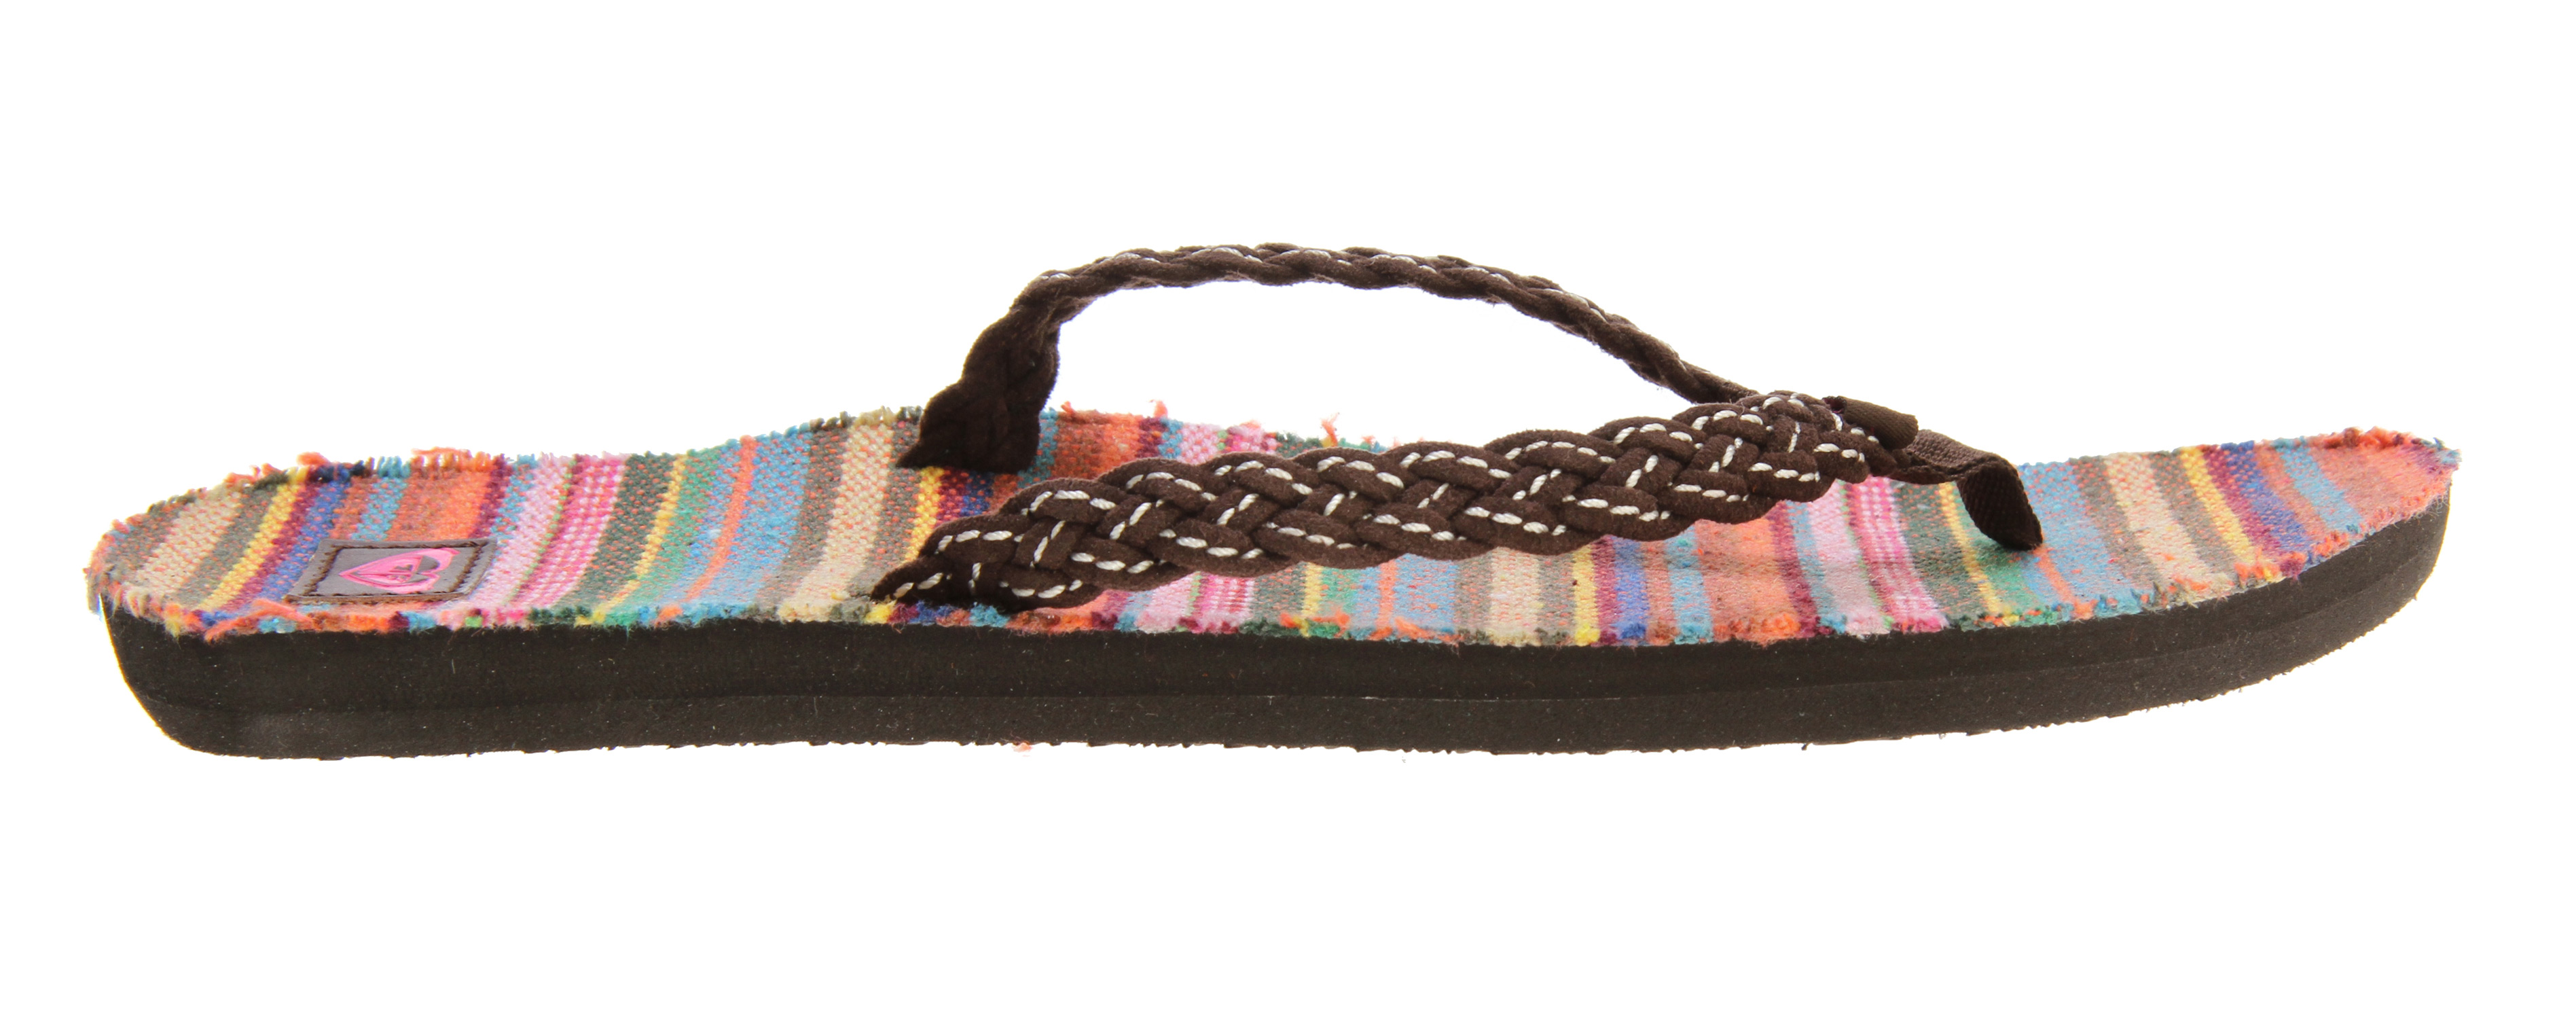 Surf Key Features of the Roxy Pinata Sandals:  Braided faux suede upper  Woven flag label  Ethnic yarn dyed textile sock  EVA outsole  Inked PU Roxy heart label - $23.95